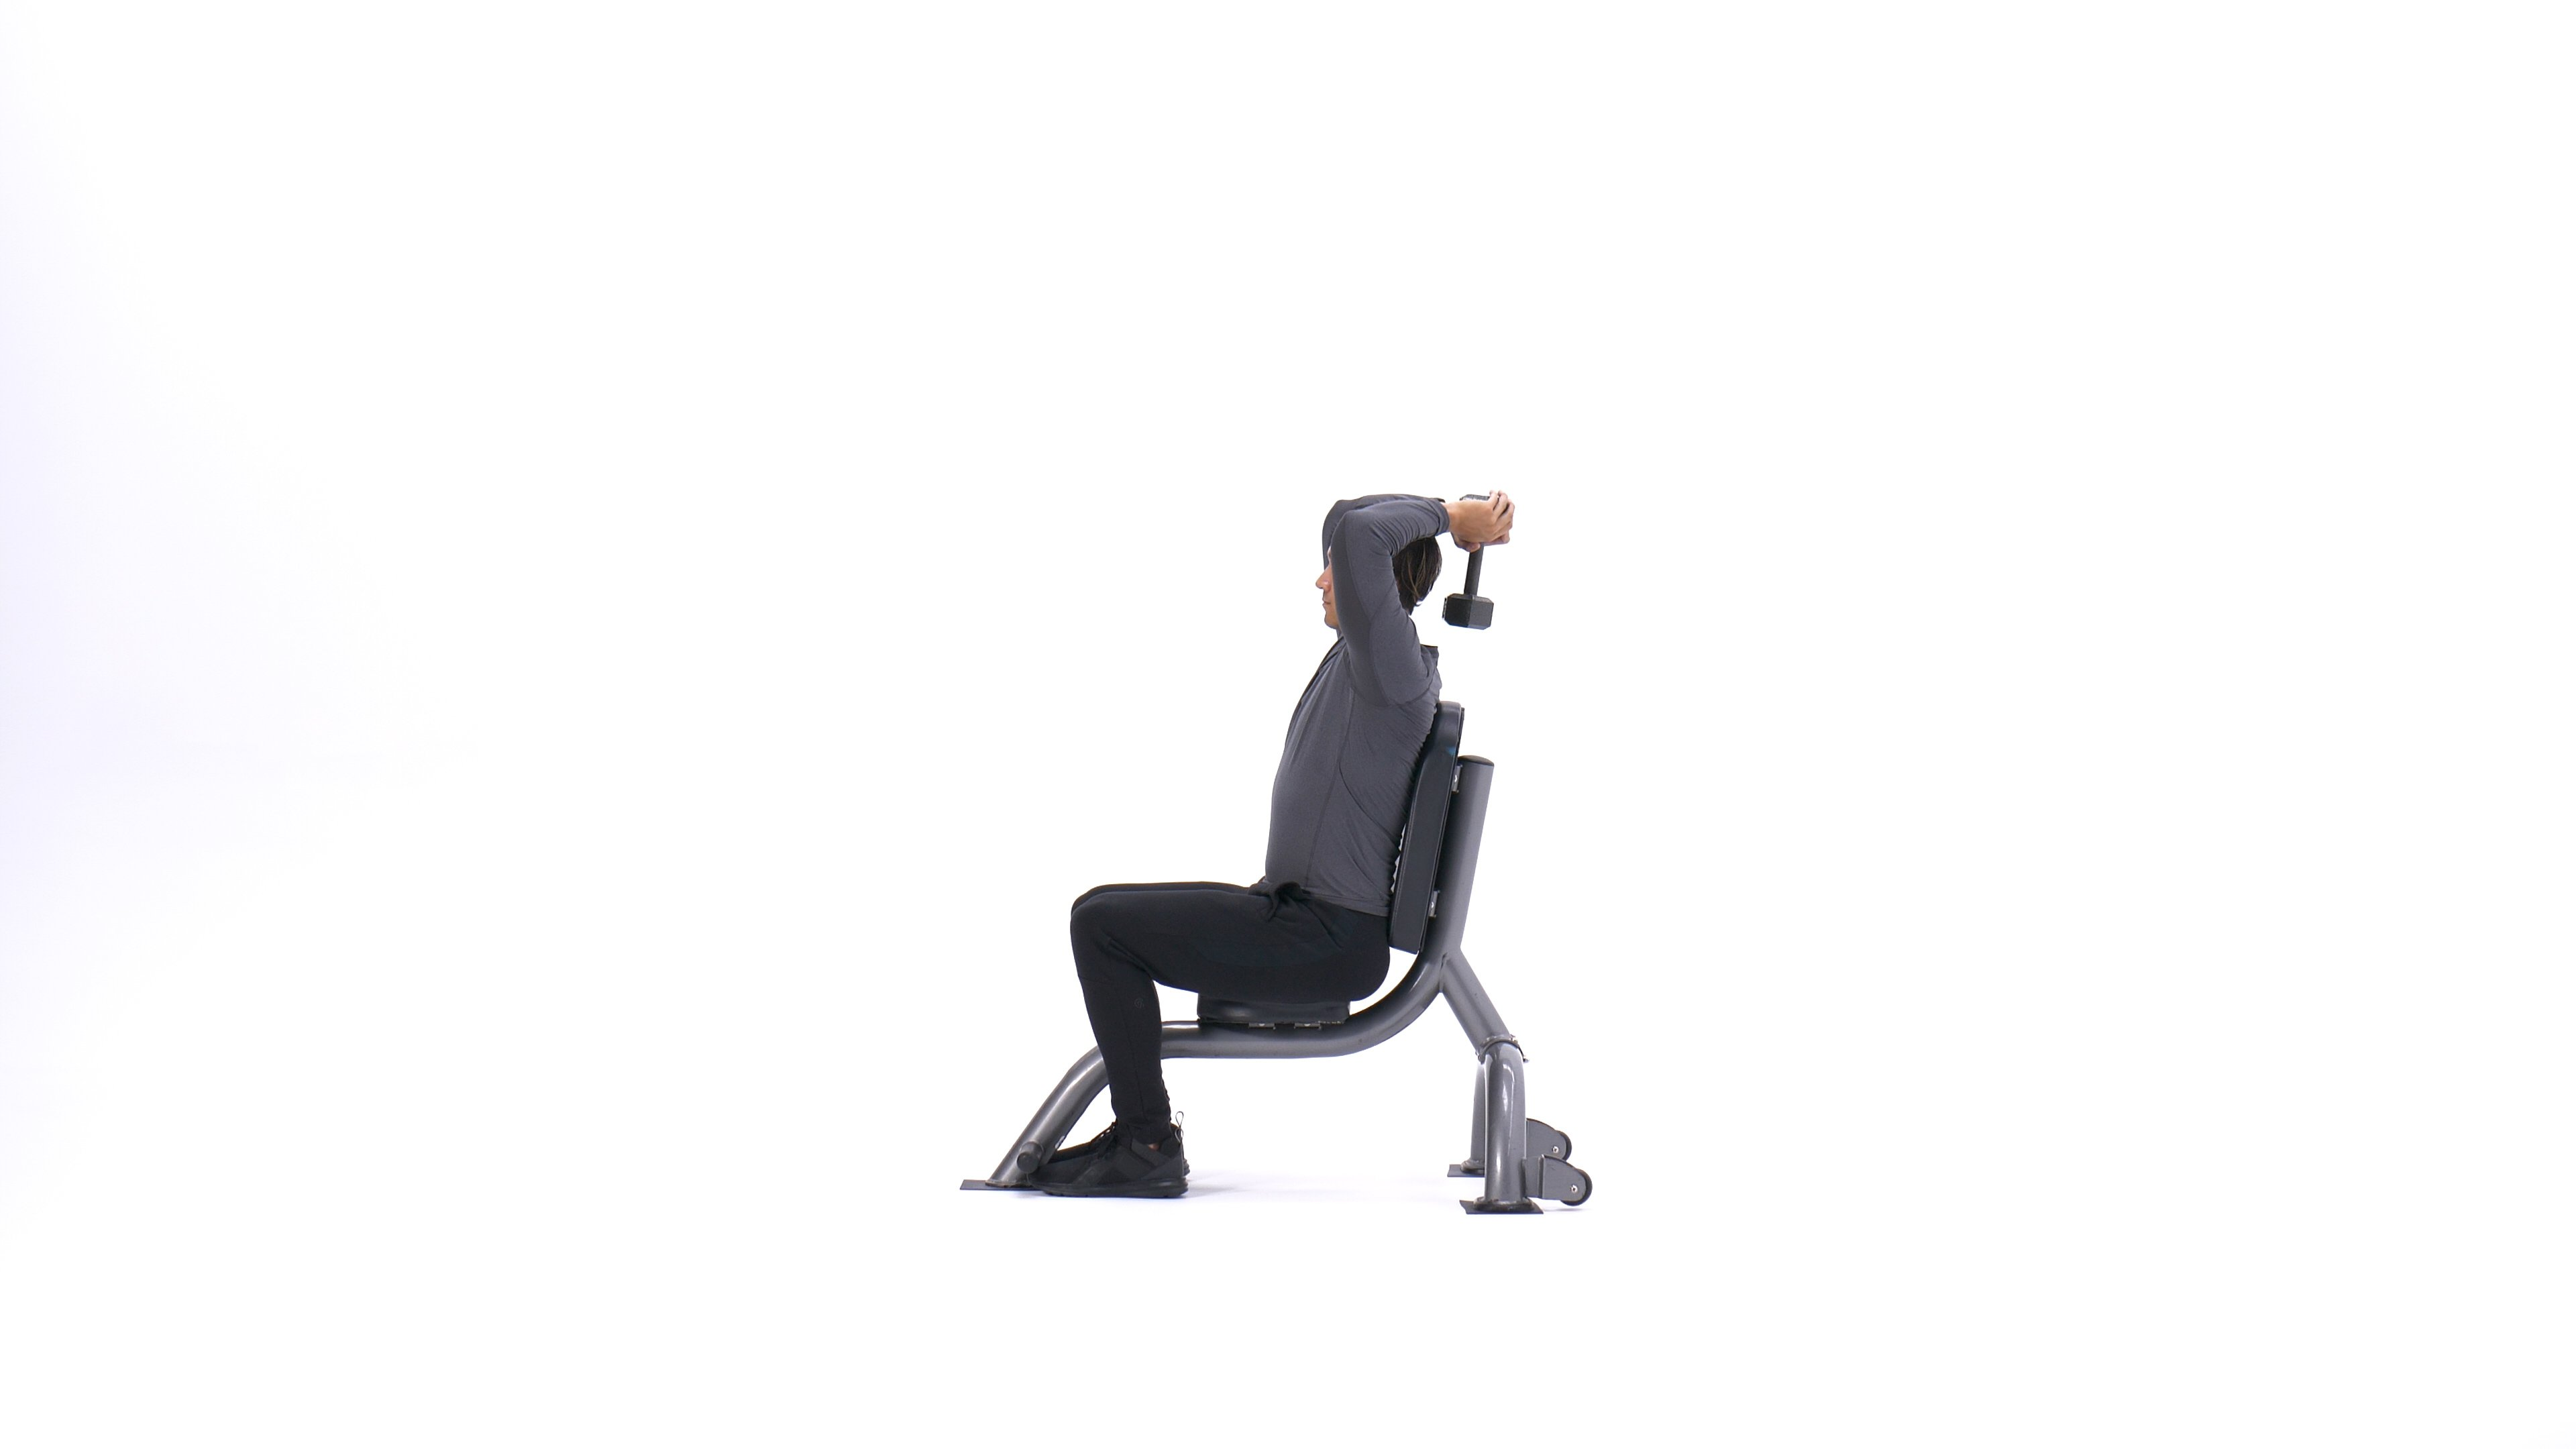 Seated triceps press image